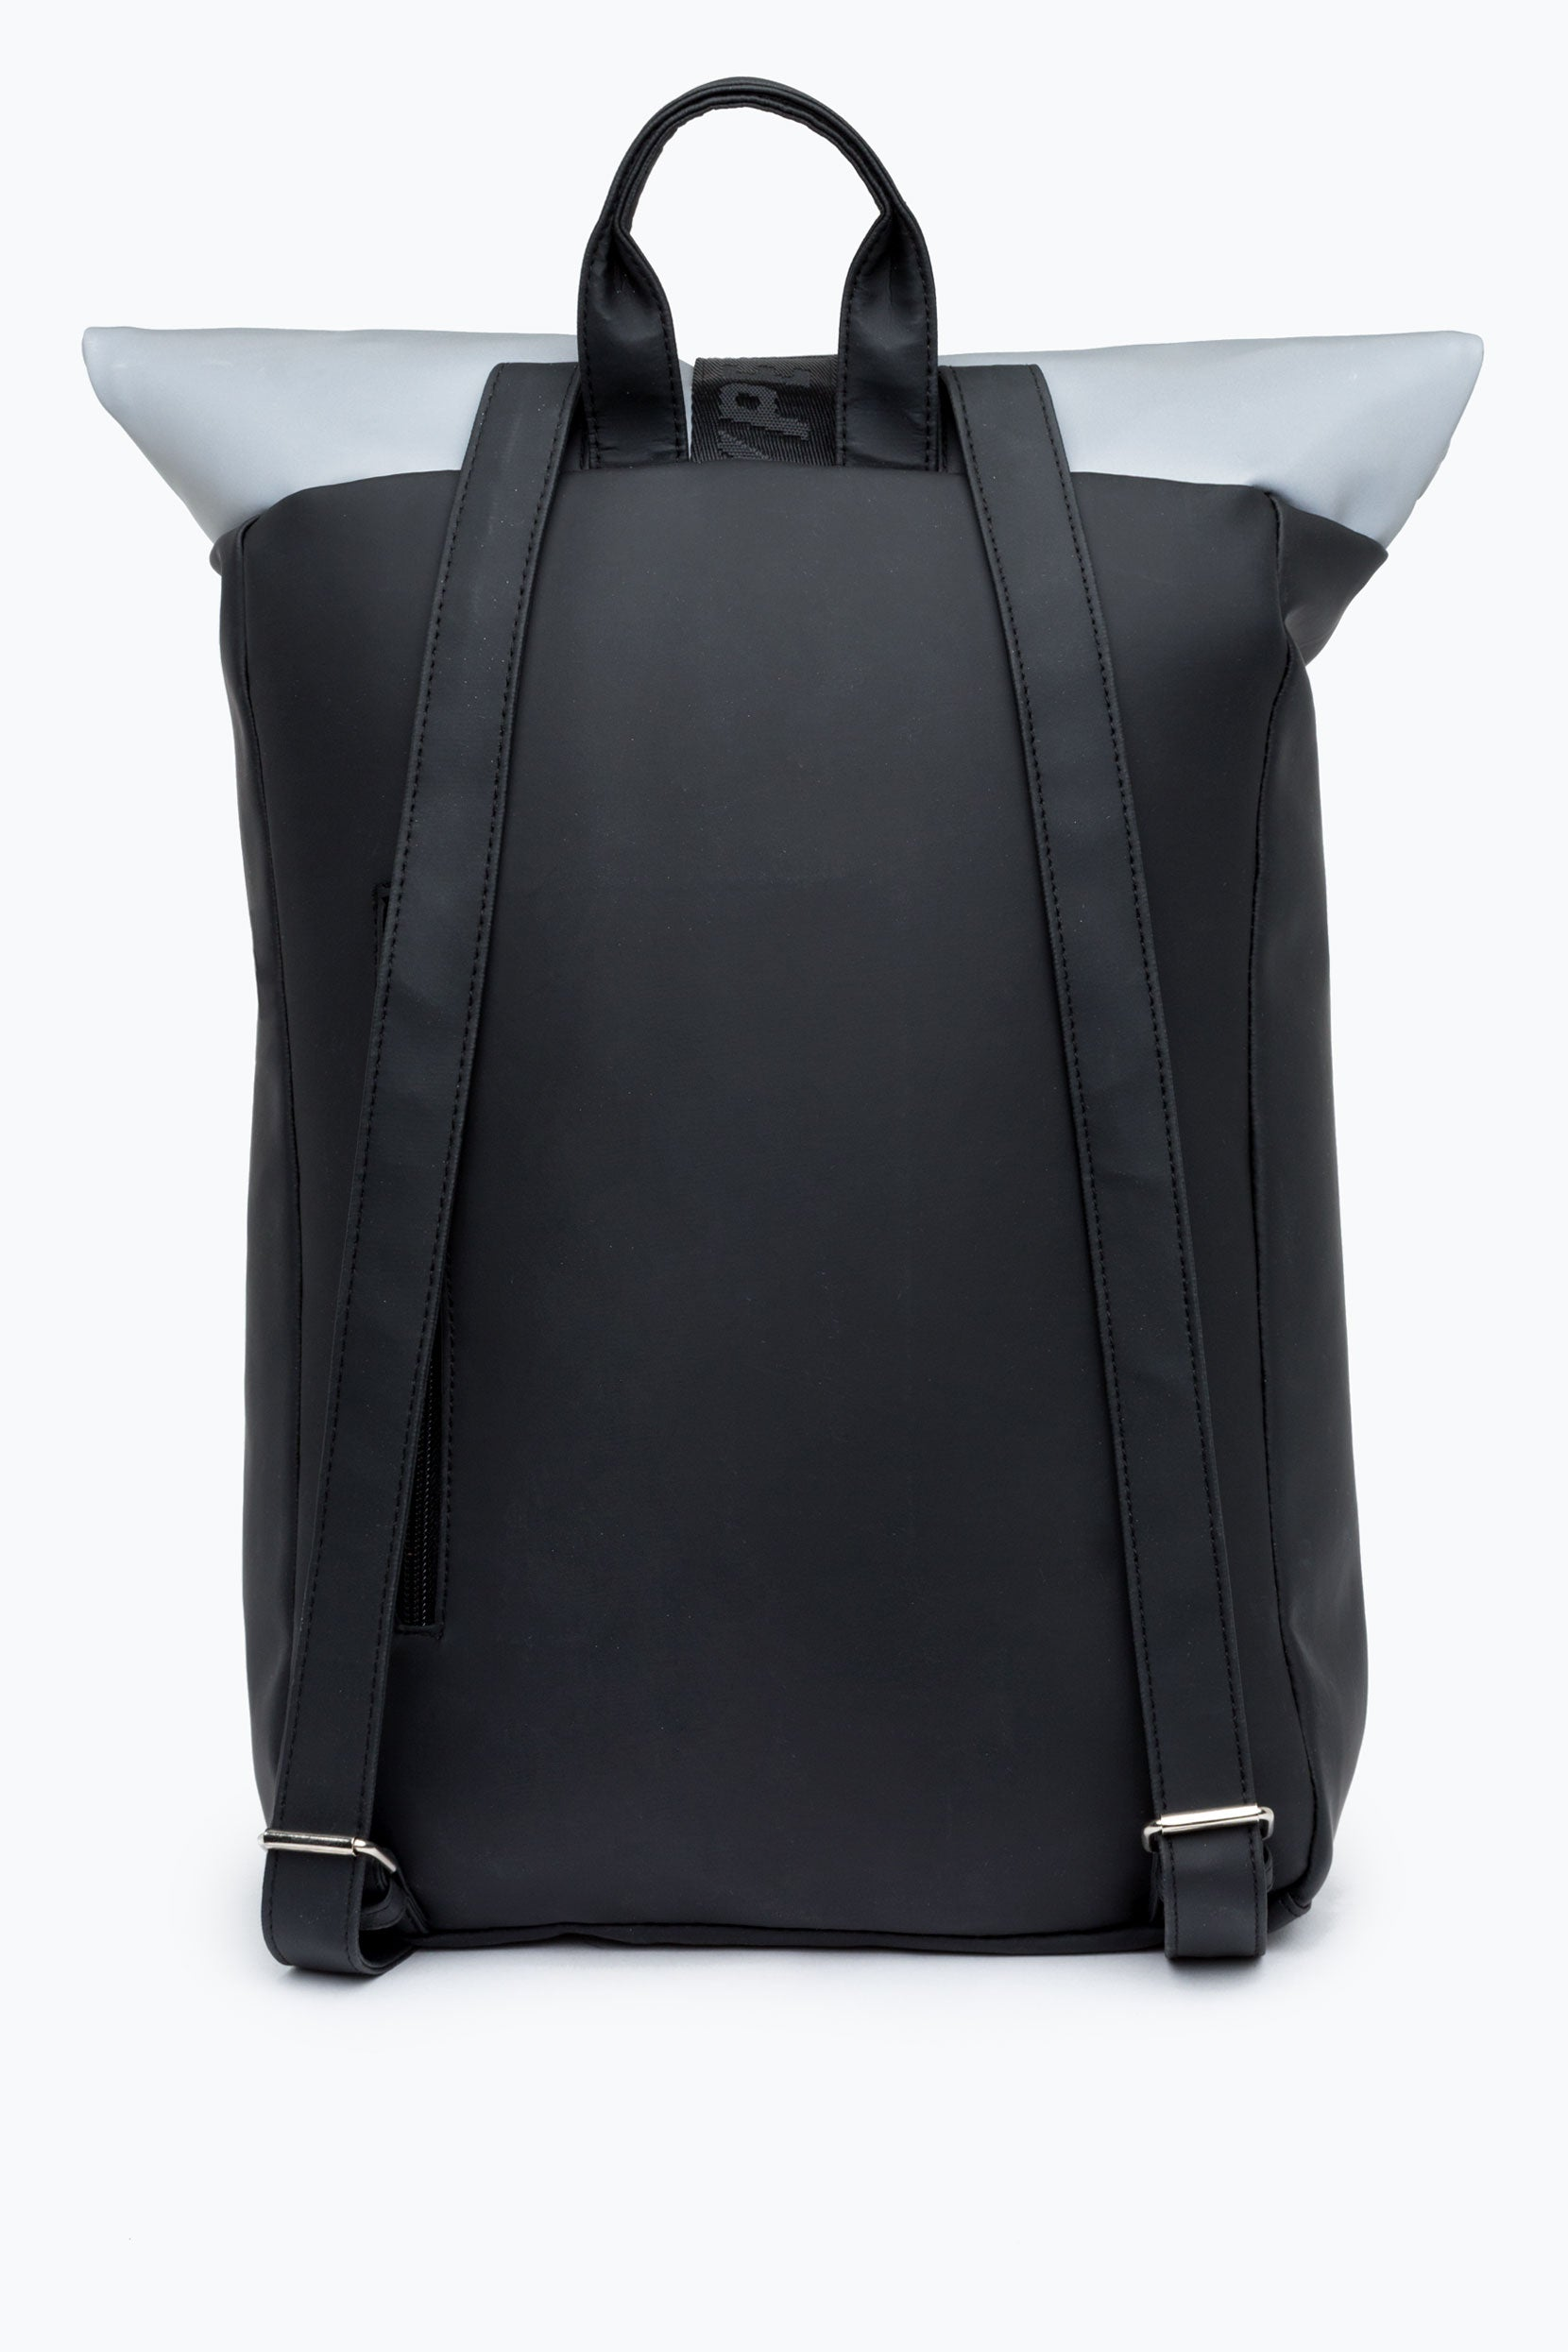 f44fd73162 HYPE BLACK REFLECTIVE BACKPACK ROLLTOP – JustHype ltd